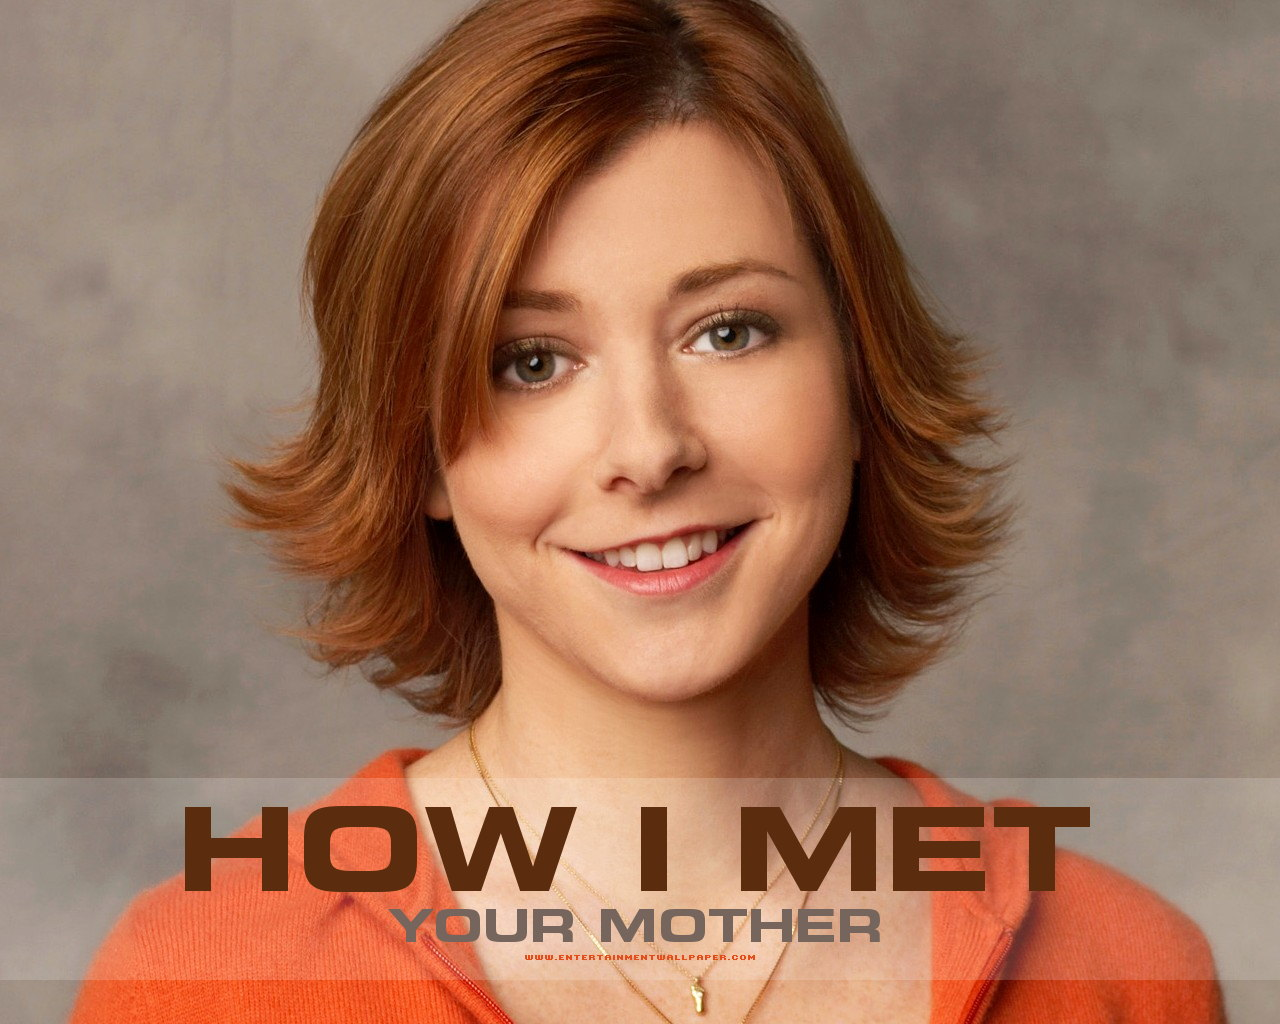 http://1.bp.blogspot.com/_jCKdJqTKk1M/TKCx9752ygI/AAAAAAAAAZ4/plh1fQNLZh0/s1600/tv_how_i_met_your_mother09.jpg